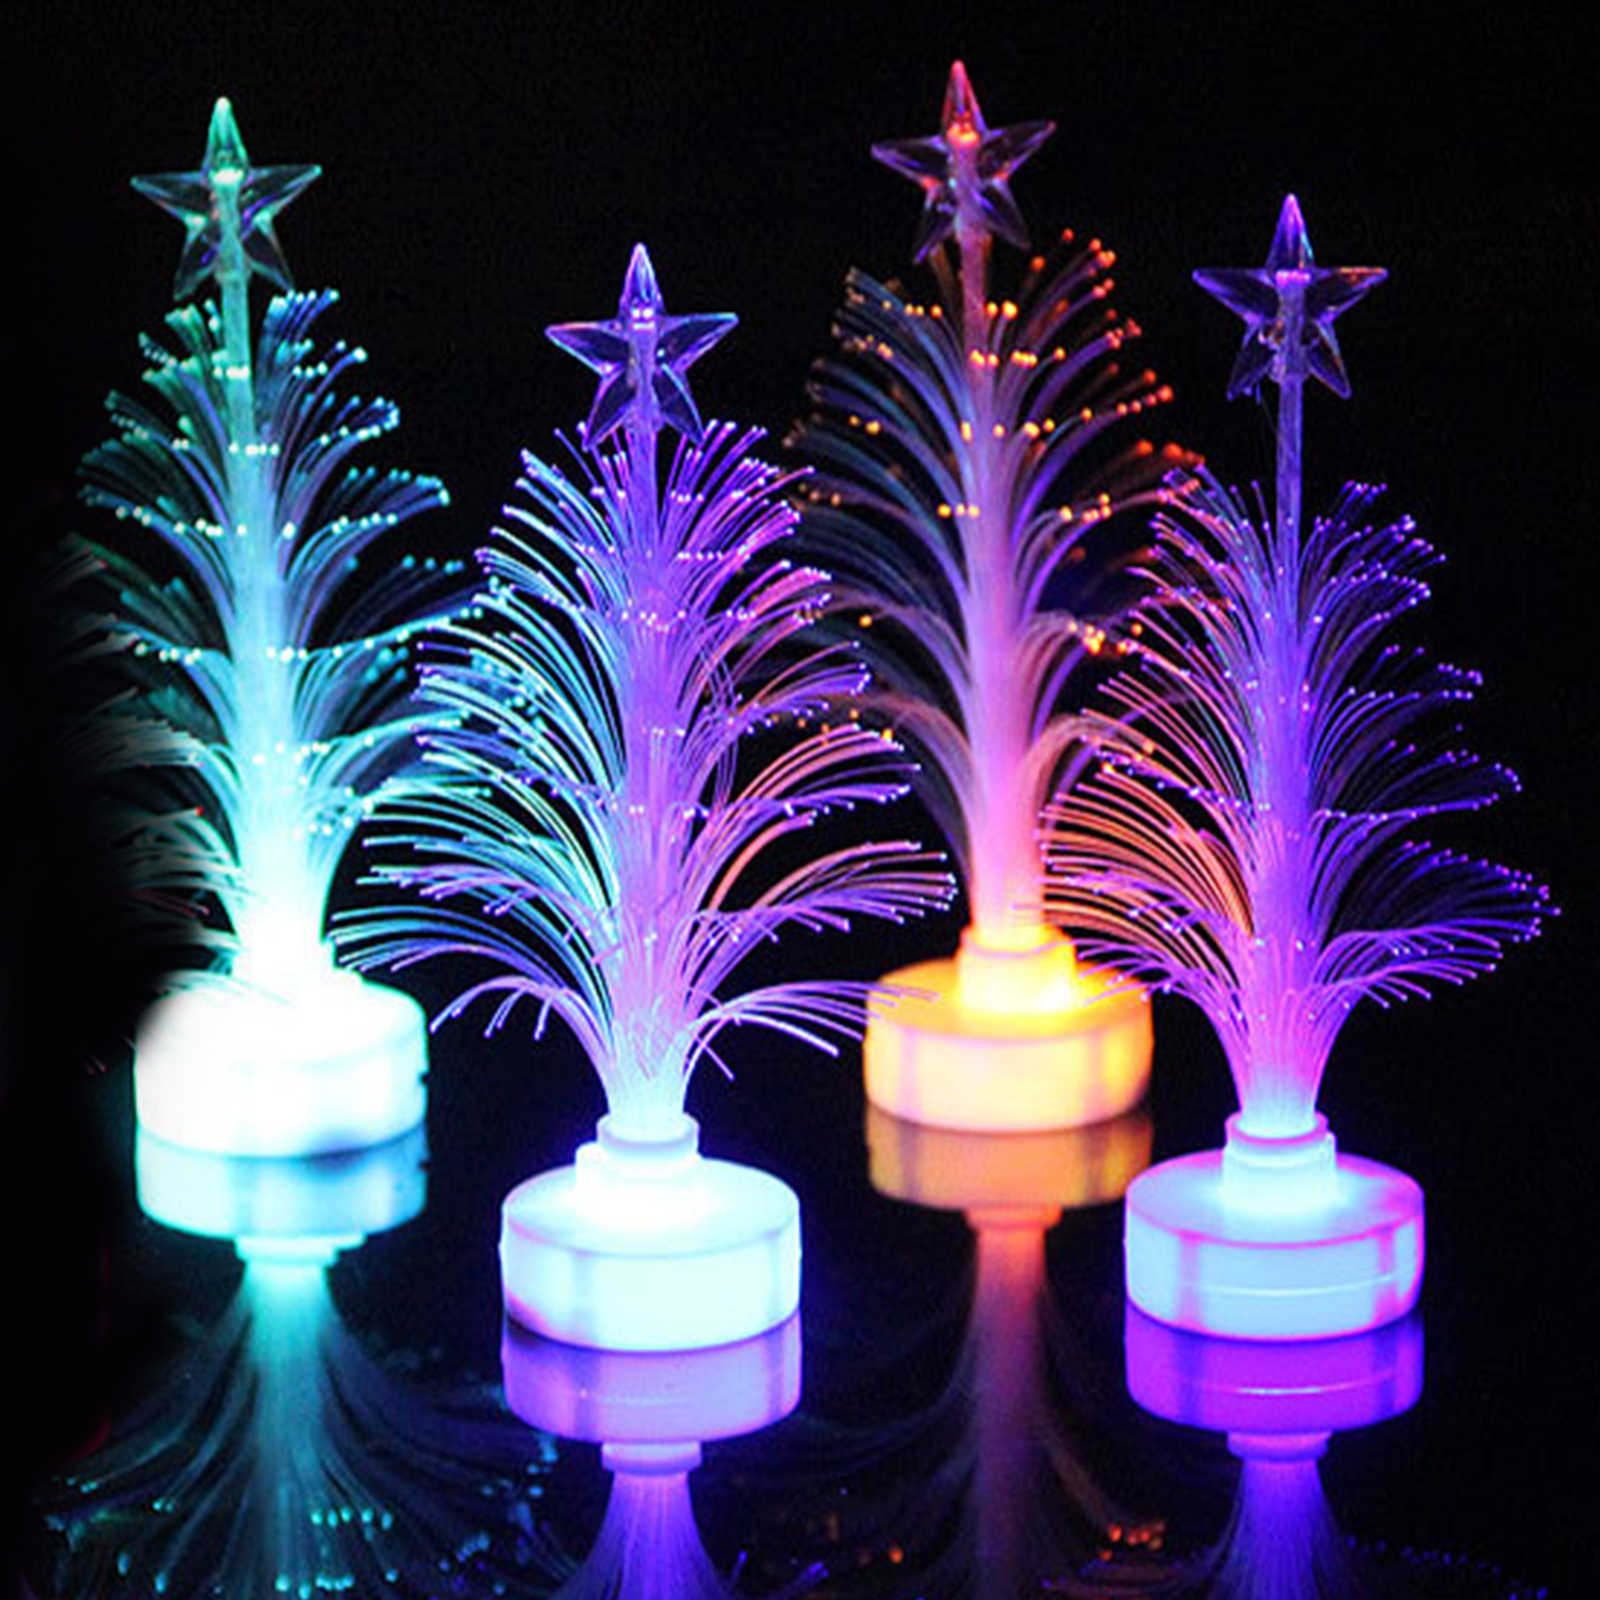 7 color led christmas lights - Yescar.innovations2019.org